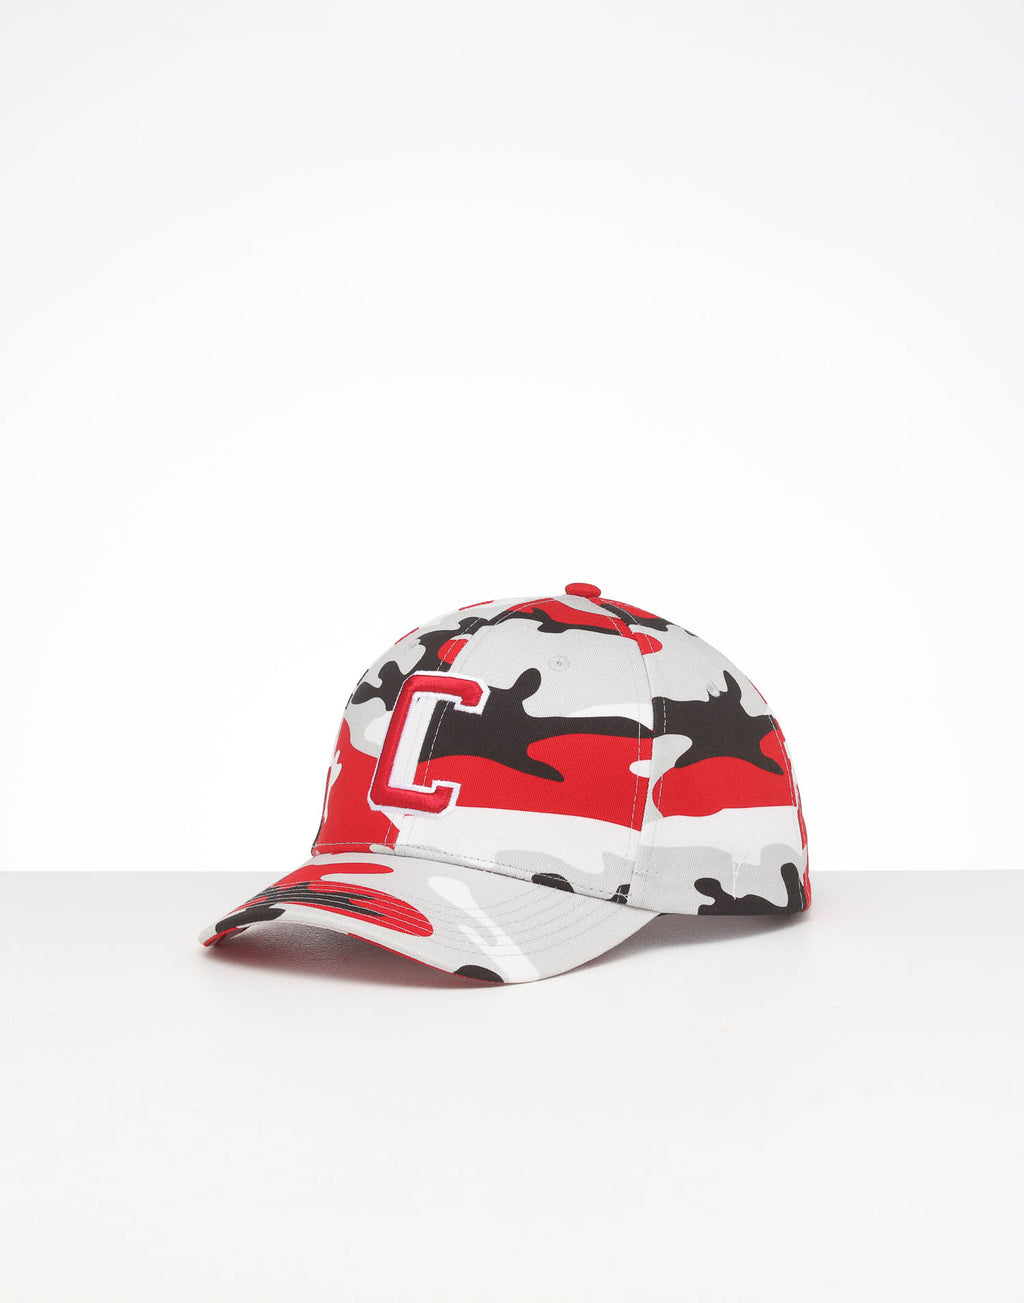 CARRÉ CAPITAL C GRAND SNAPBACK RED CAMO